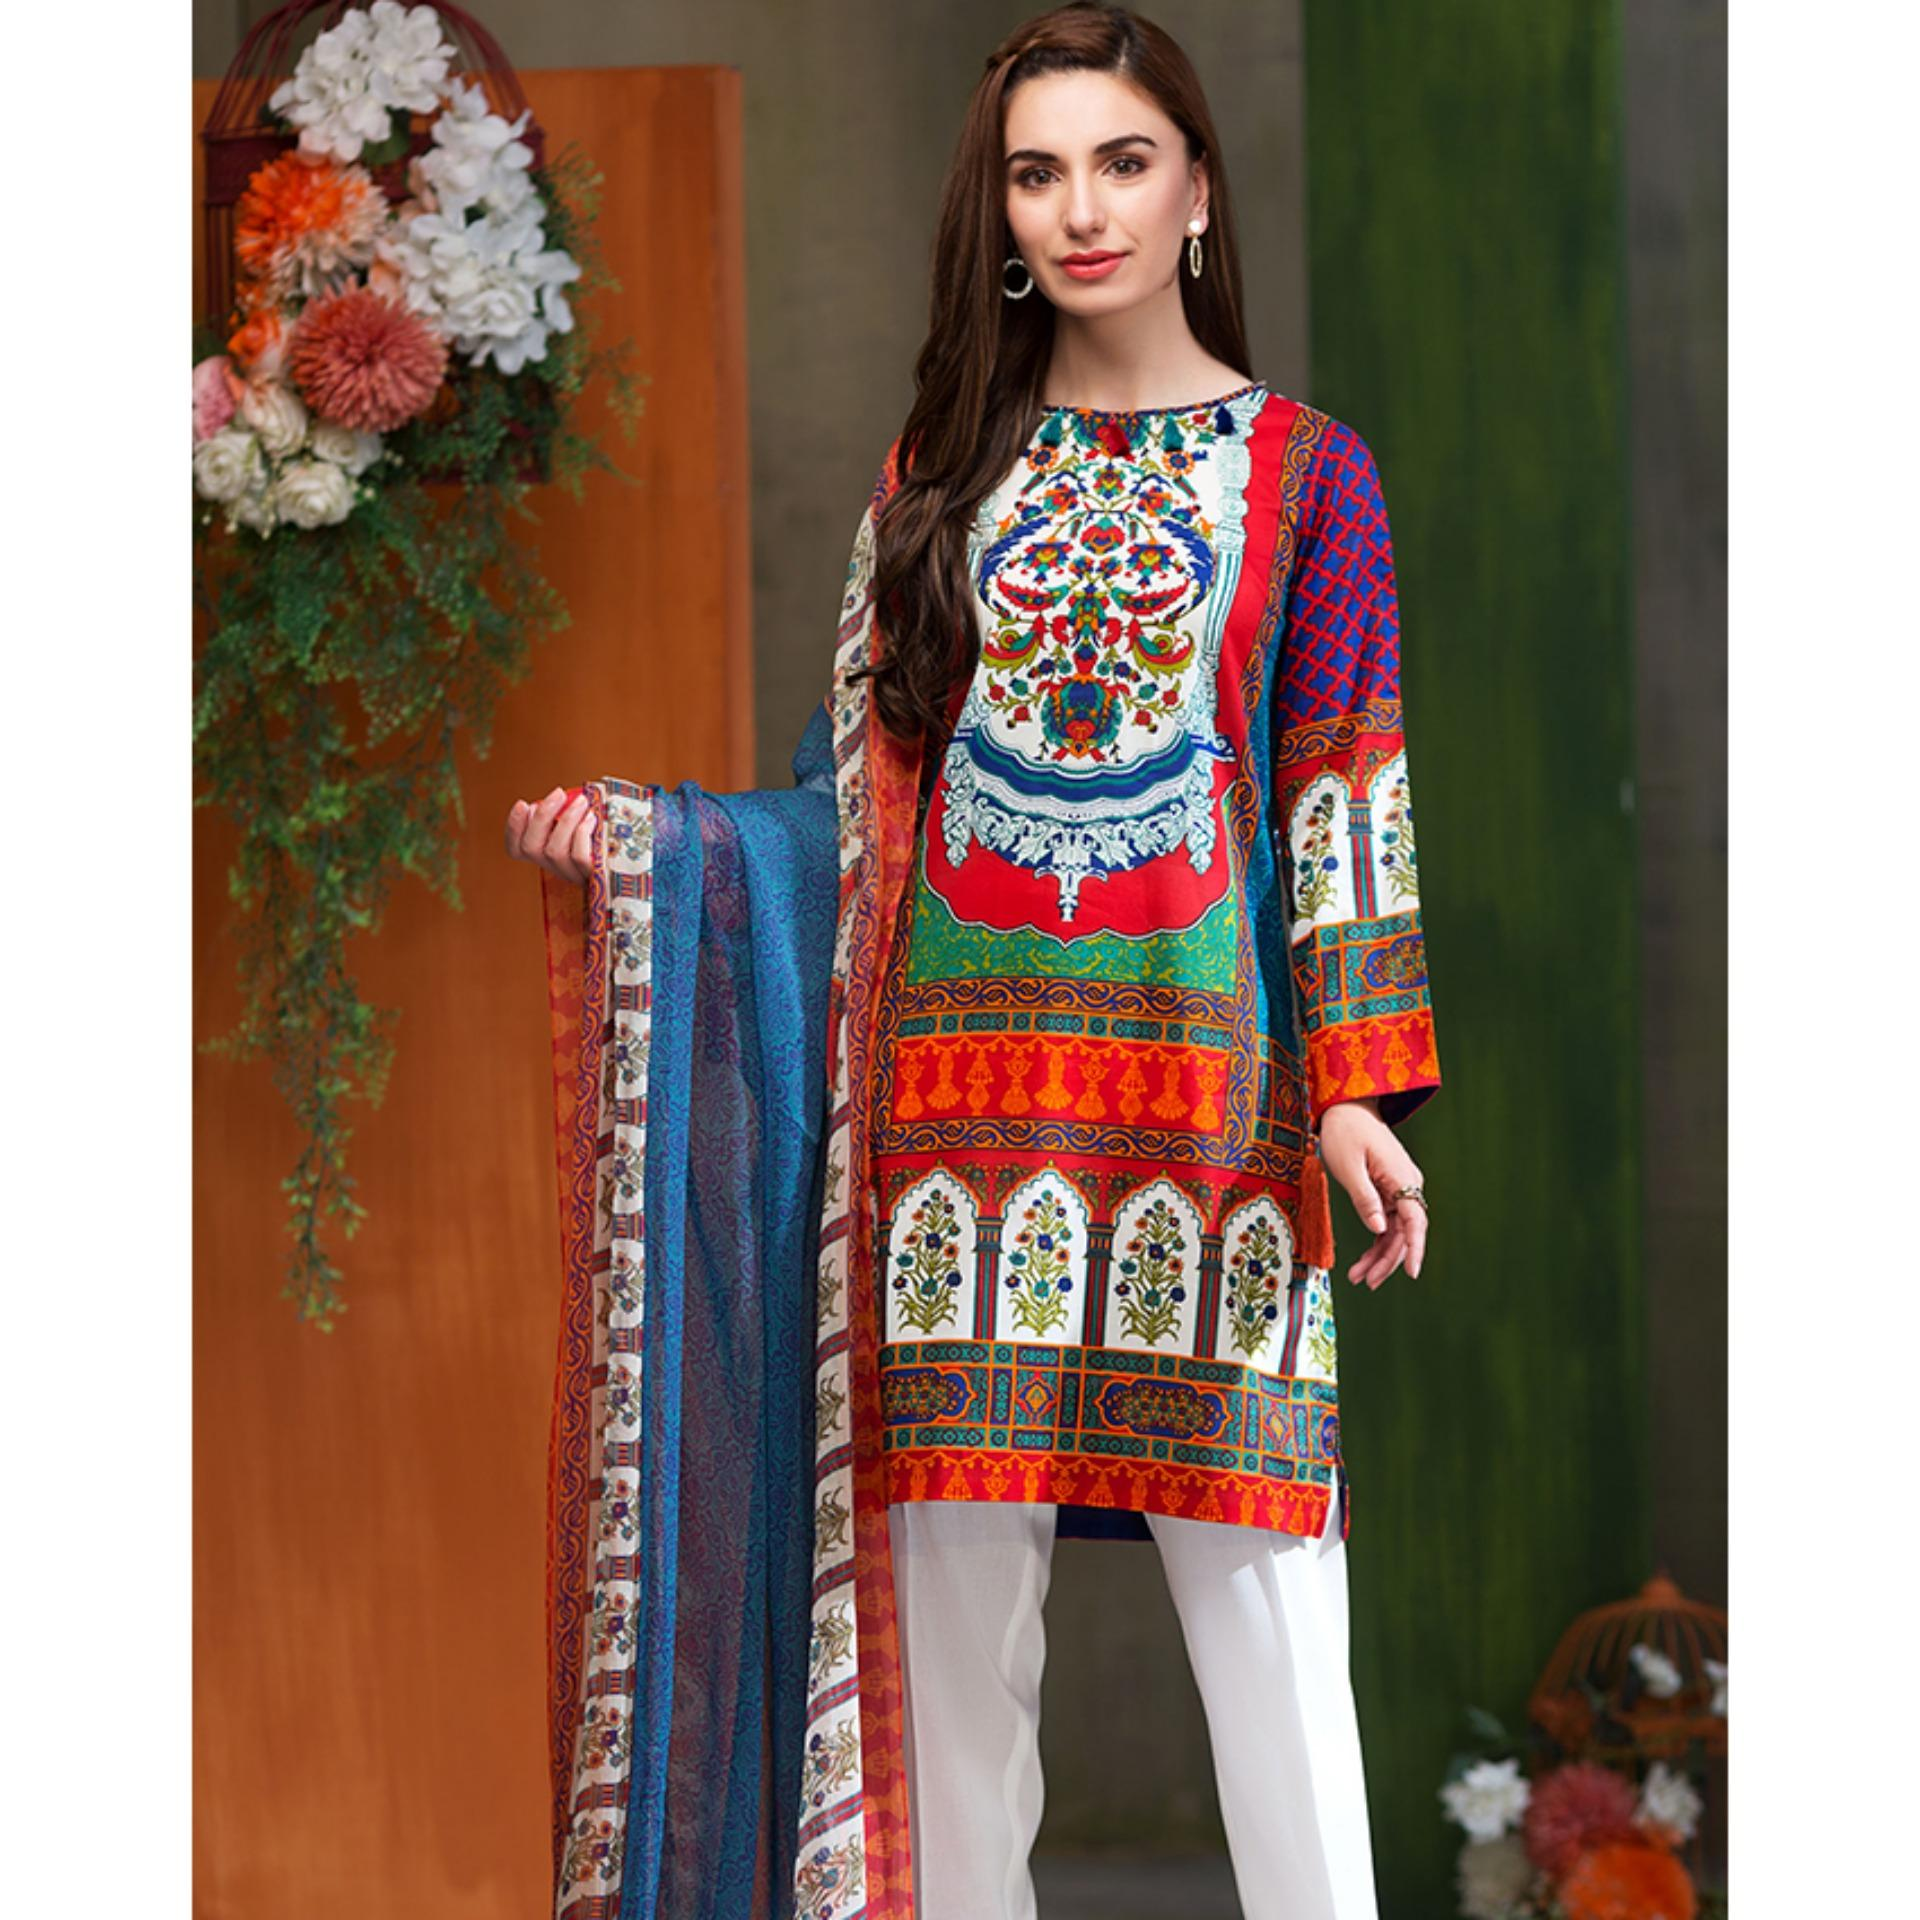 f4bc4a439 Lawn Collection 2019  Pakistani Lawn Dresses - Suits Sale - Daraz.pk